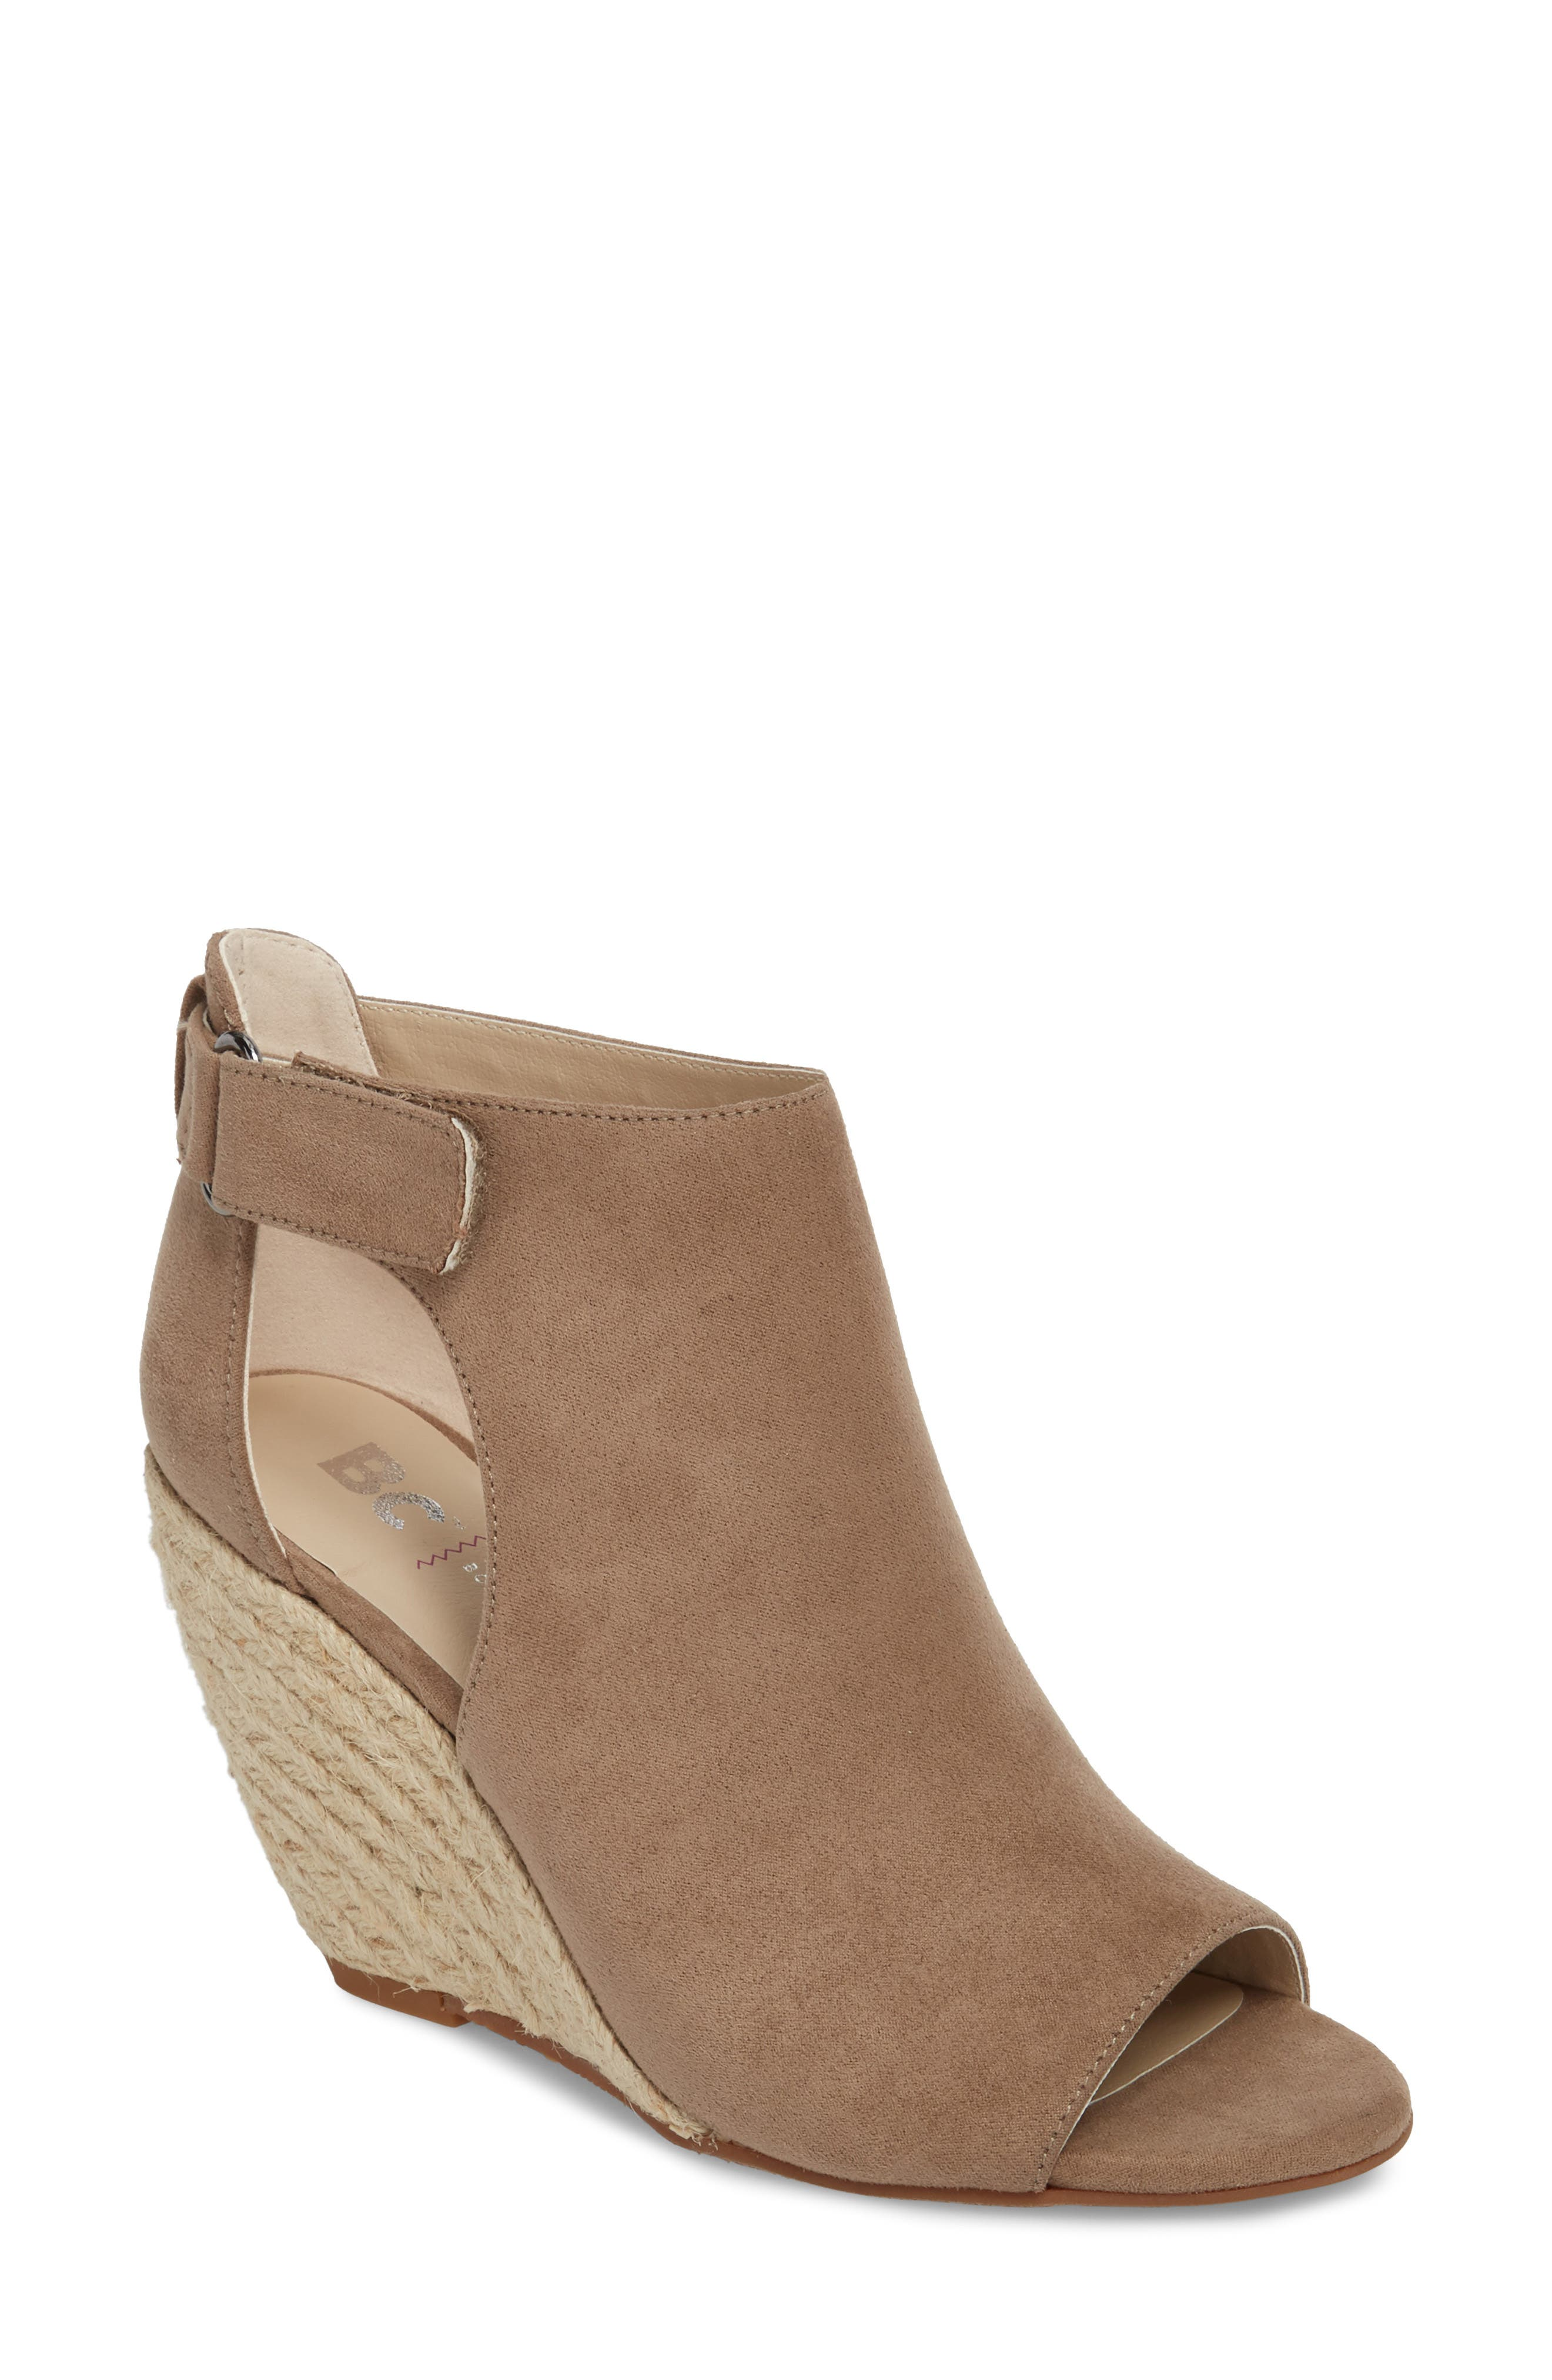 Theme Park Wedge Bootie,                         Main,                         color, Taupe Nubuck